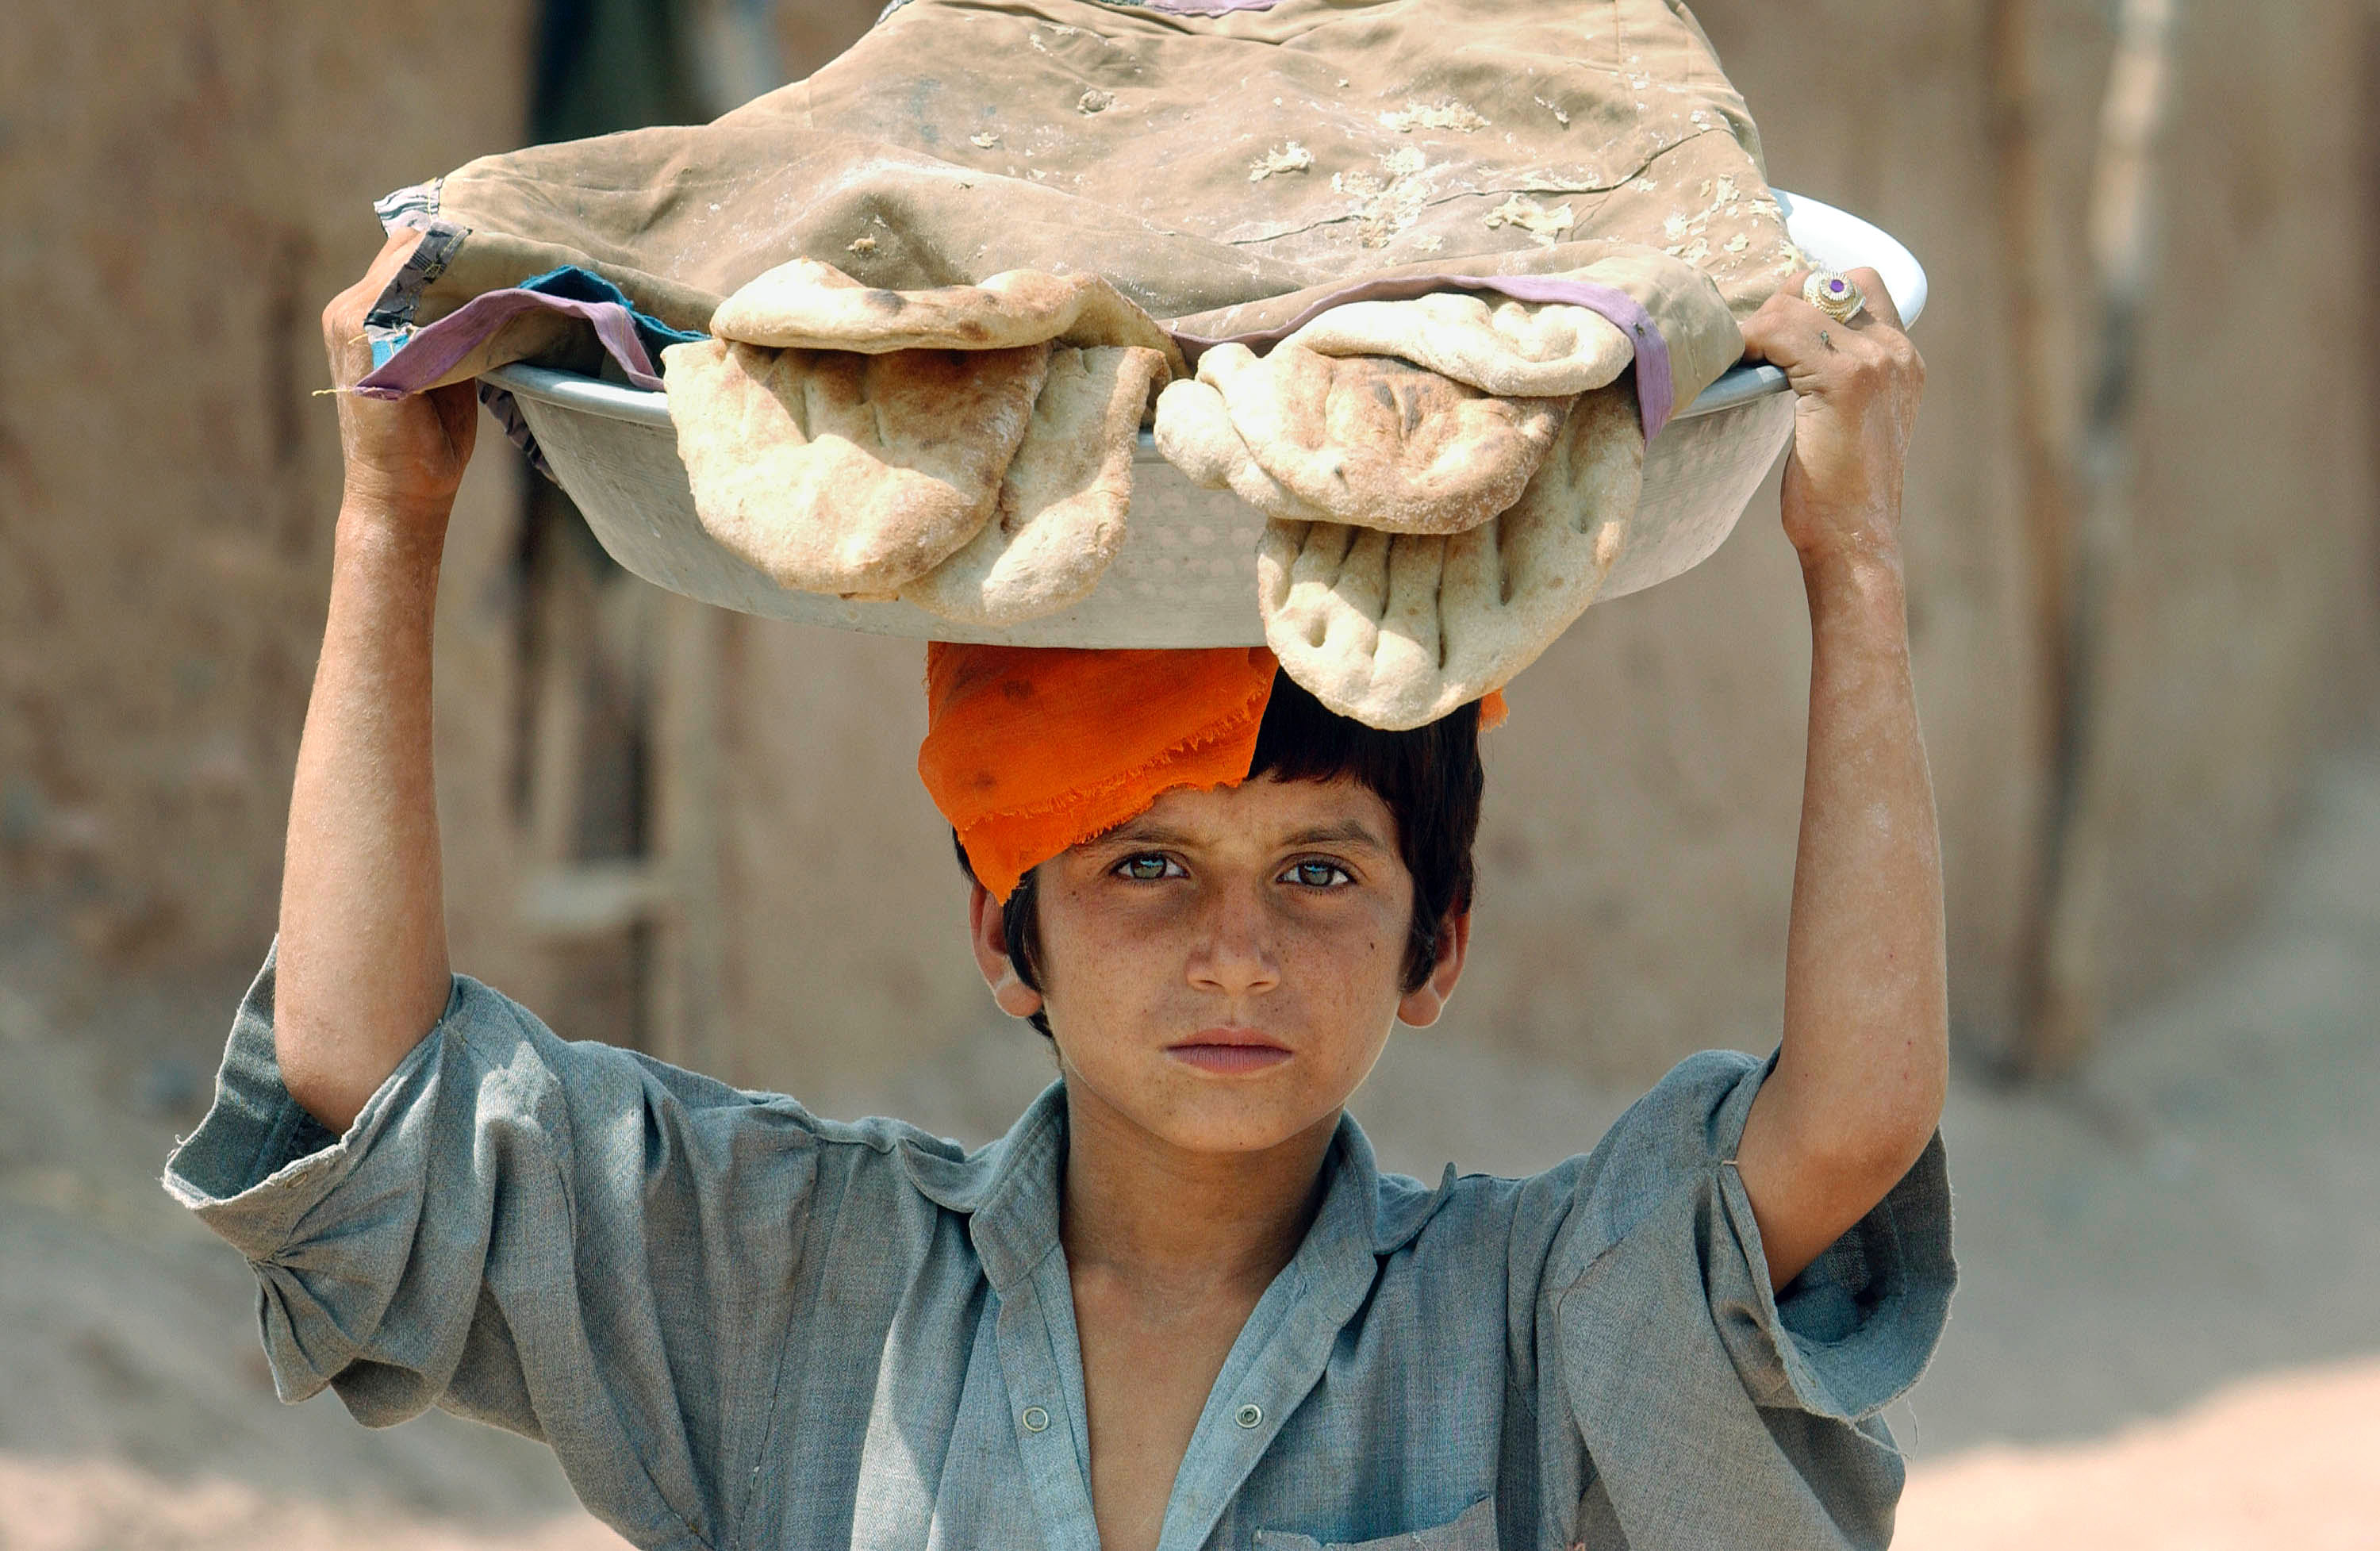 SHAMSHATU REFUGEE CAMP, PAKISTAN - AUGUST 30:  An unidentified Afghan refugee child carries a platter of nan bread through the deserted dirt streets of the Shamshatu refugee camp August 30, 2002 in Pakistan near the border of Afghanistan. To the surprise of many observers, hundreds of thousands of Afghani refugees in Pakistan have flooded back into their home country since January, some after 20 years of exile. Tens of thousands have left the once-crowded Shamshatu camp alone, leaving large areas of it deserted.  (Photo by Chris Hondros/Getty Images)